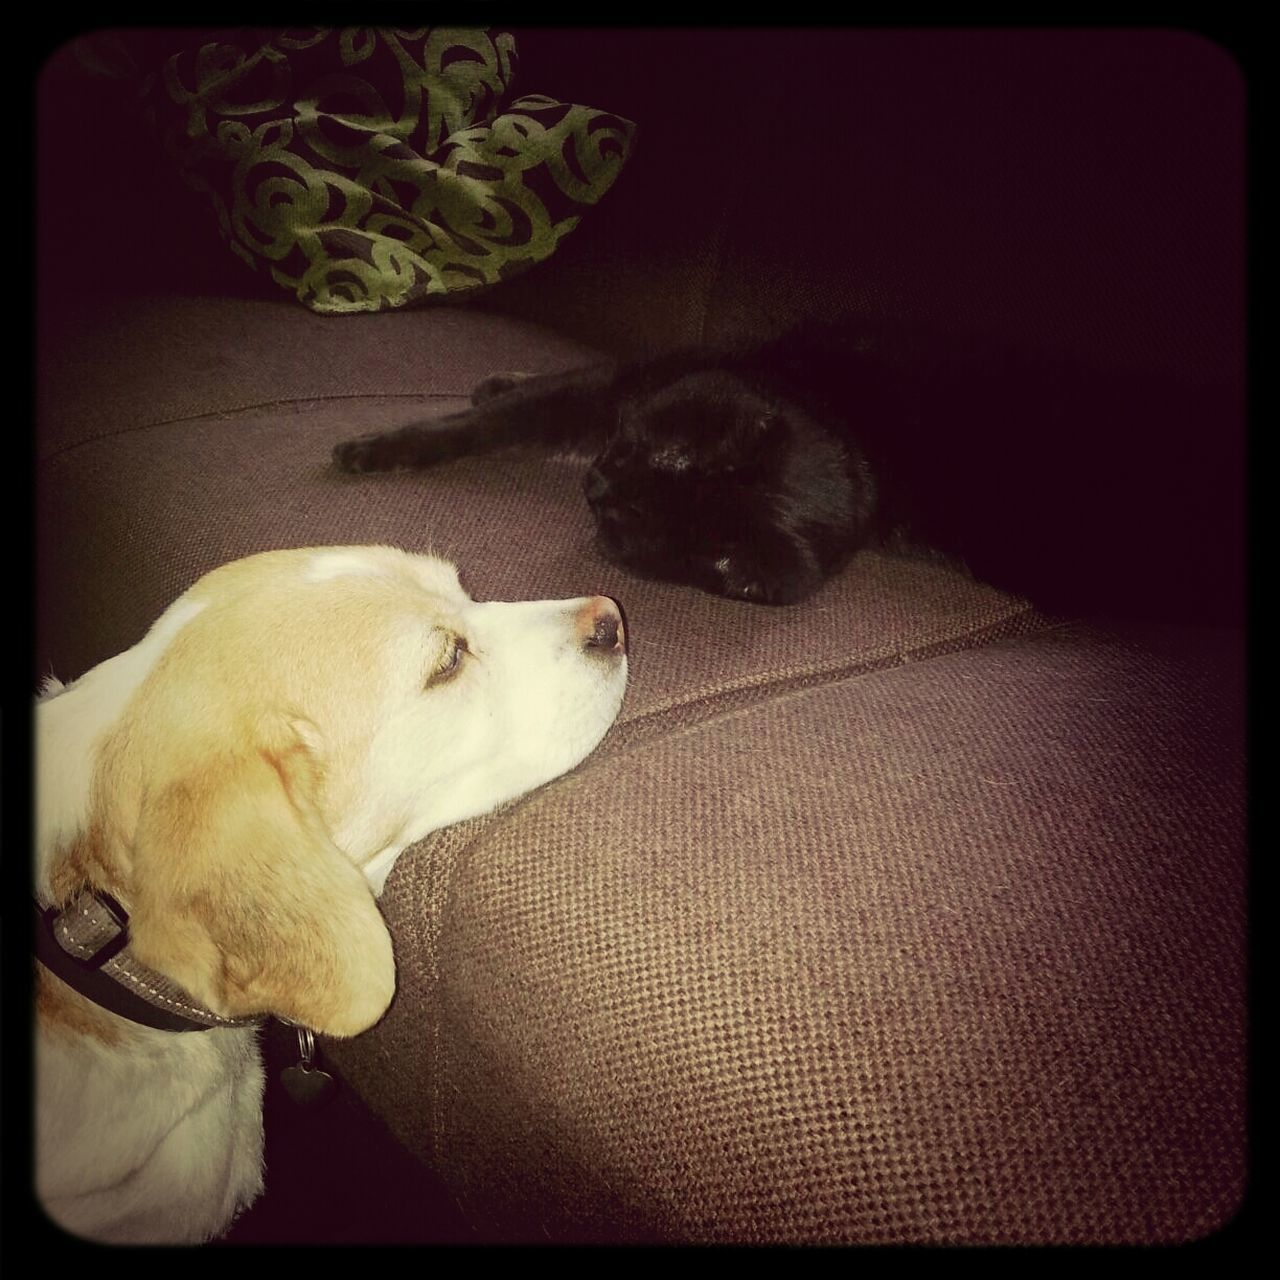 Dog Bestfriends Cat Real Love  Kaatje♥ Ado